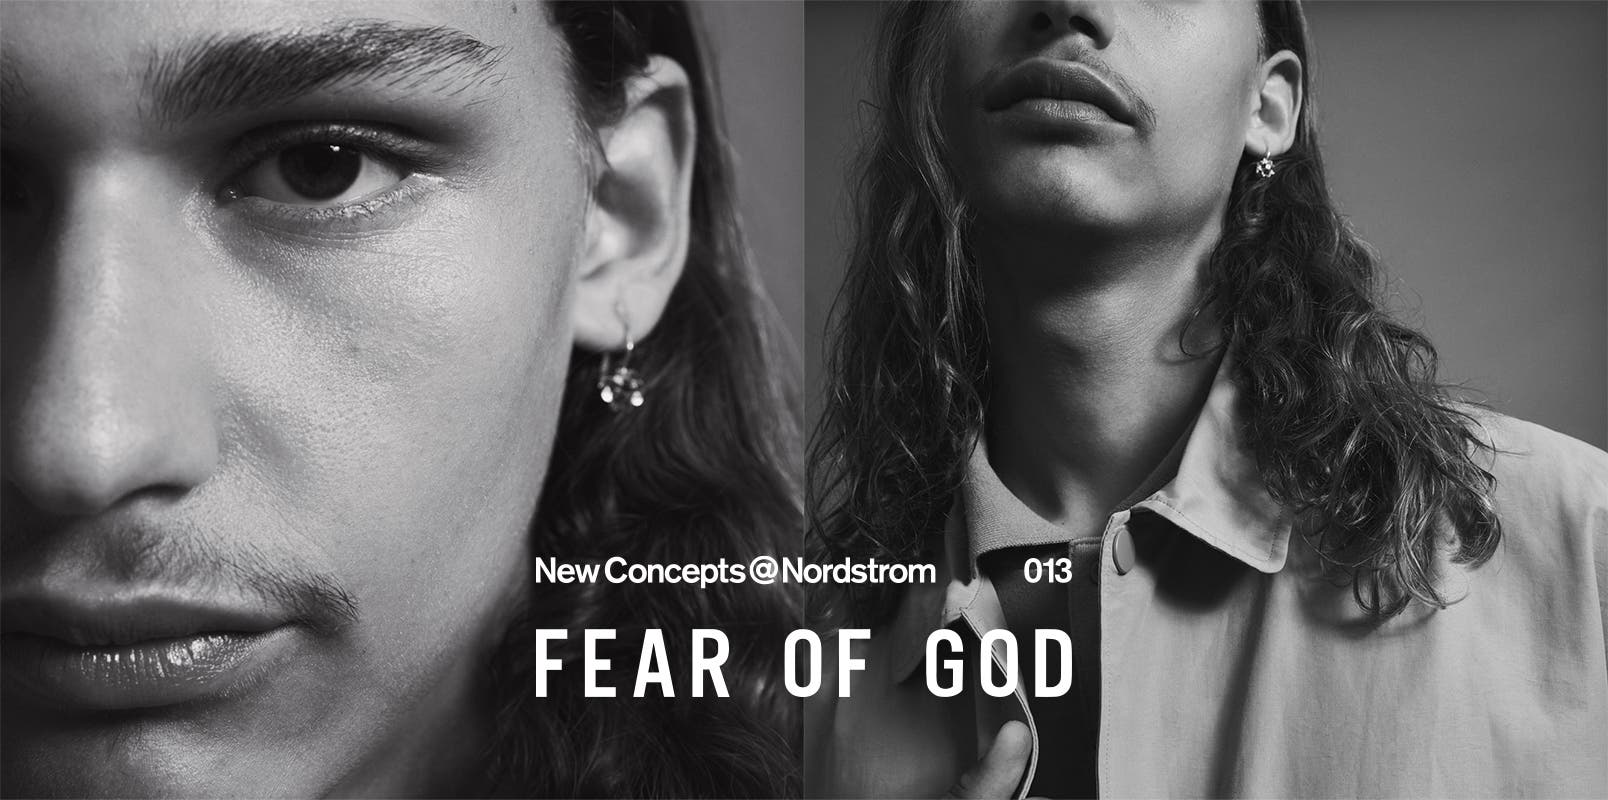 New Concepts 013: Fear of God.